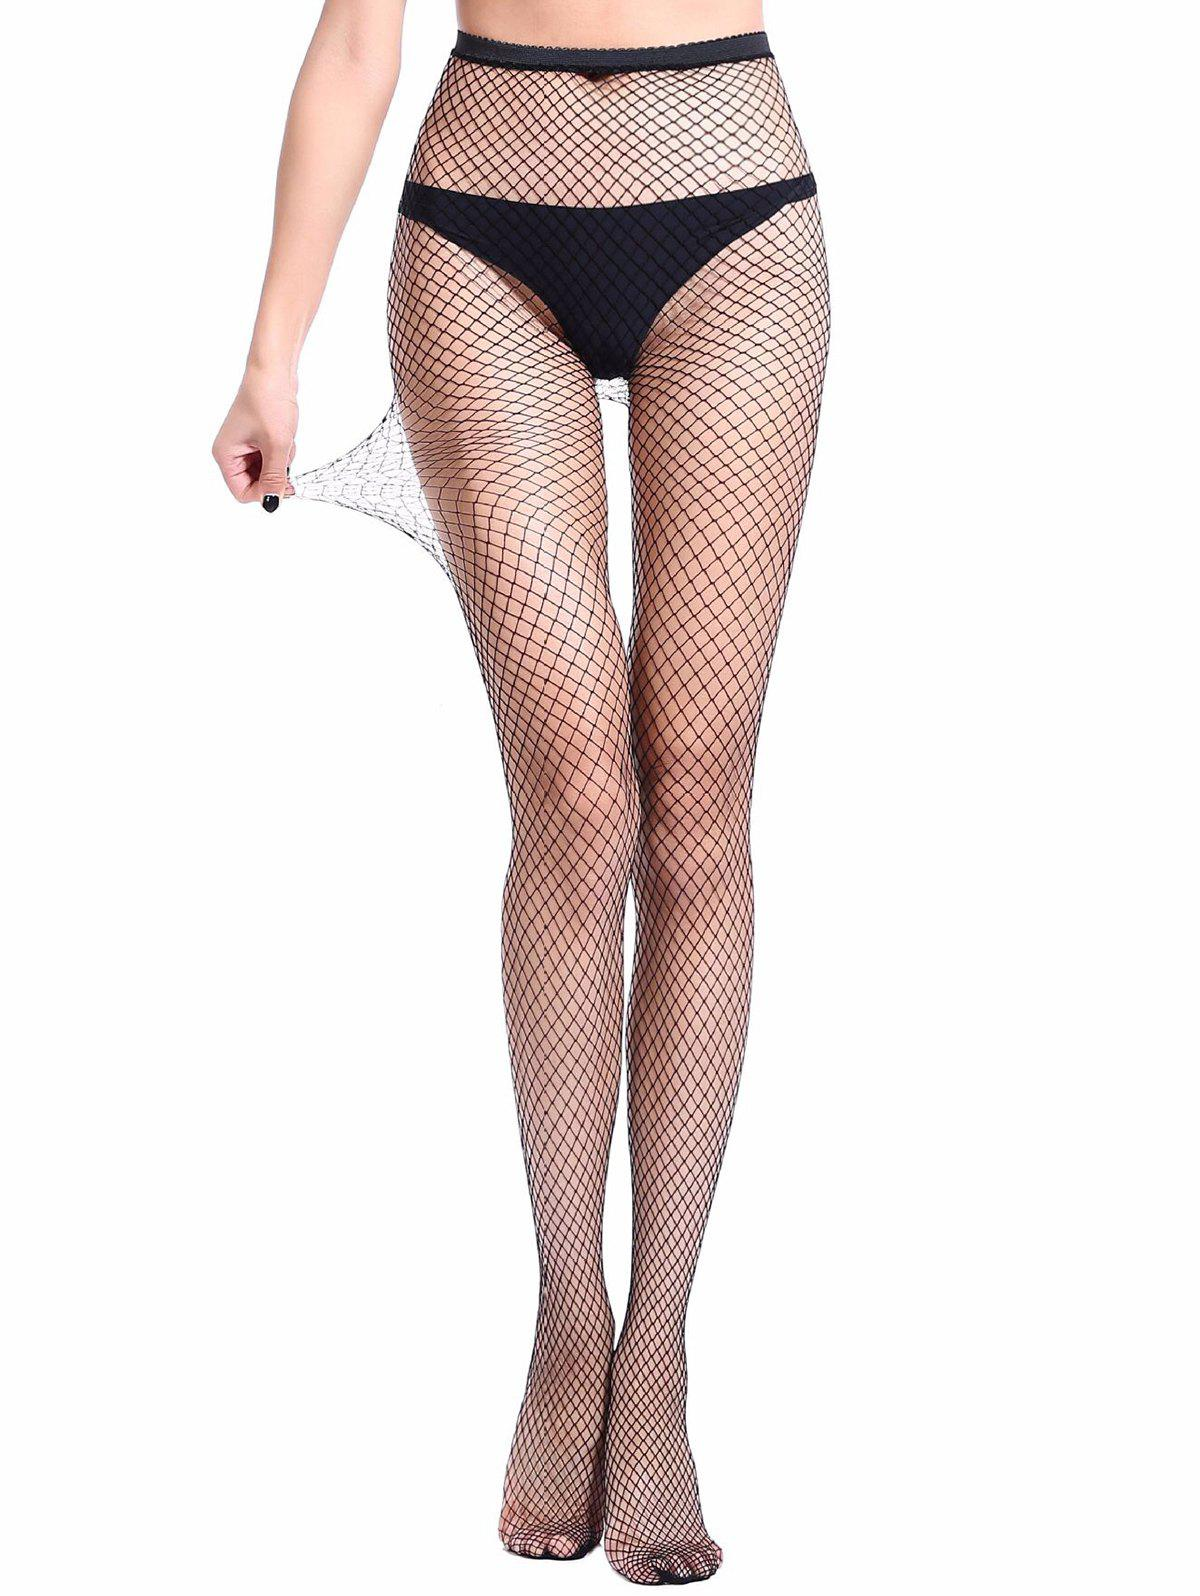 Shops Hollow Mesh Fishing Net Pantyhose